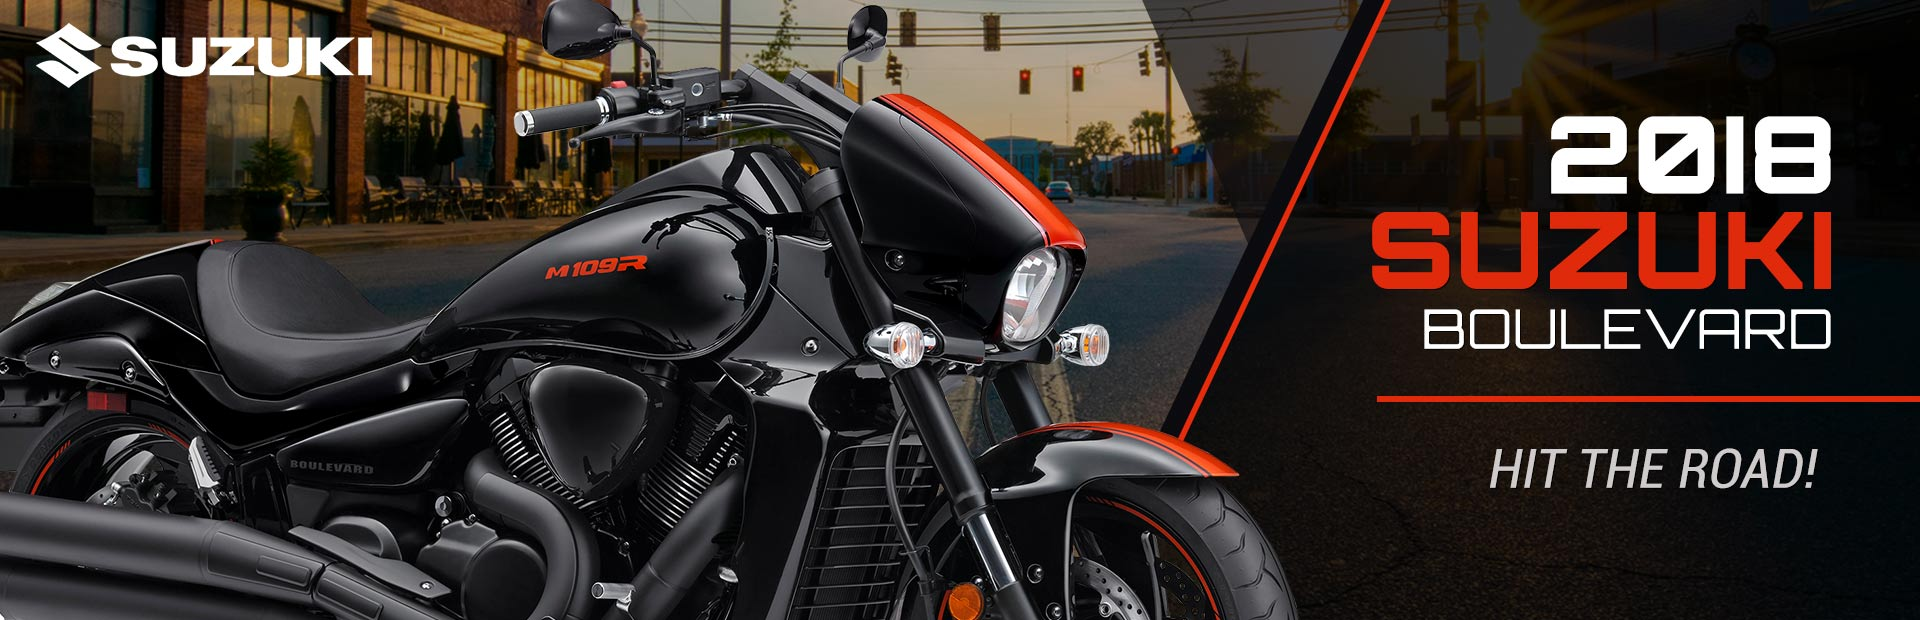 2018 Suzuki Boulevard: Click here to view the models.